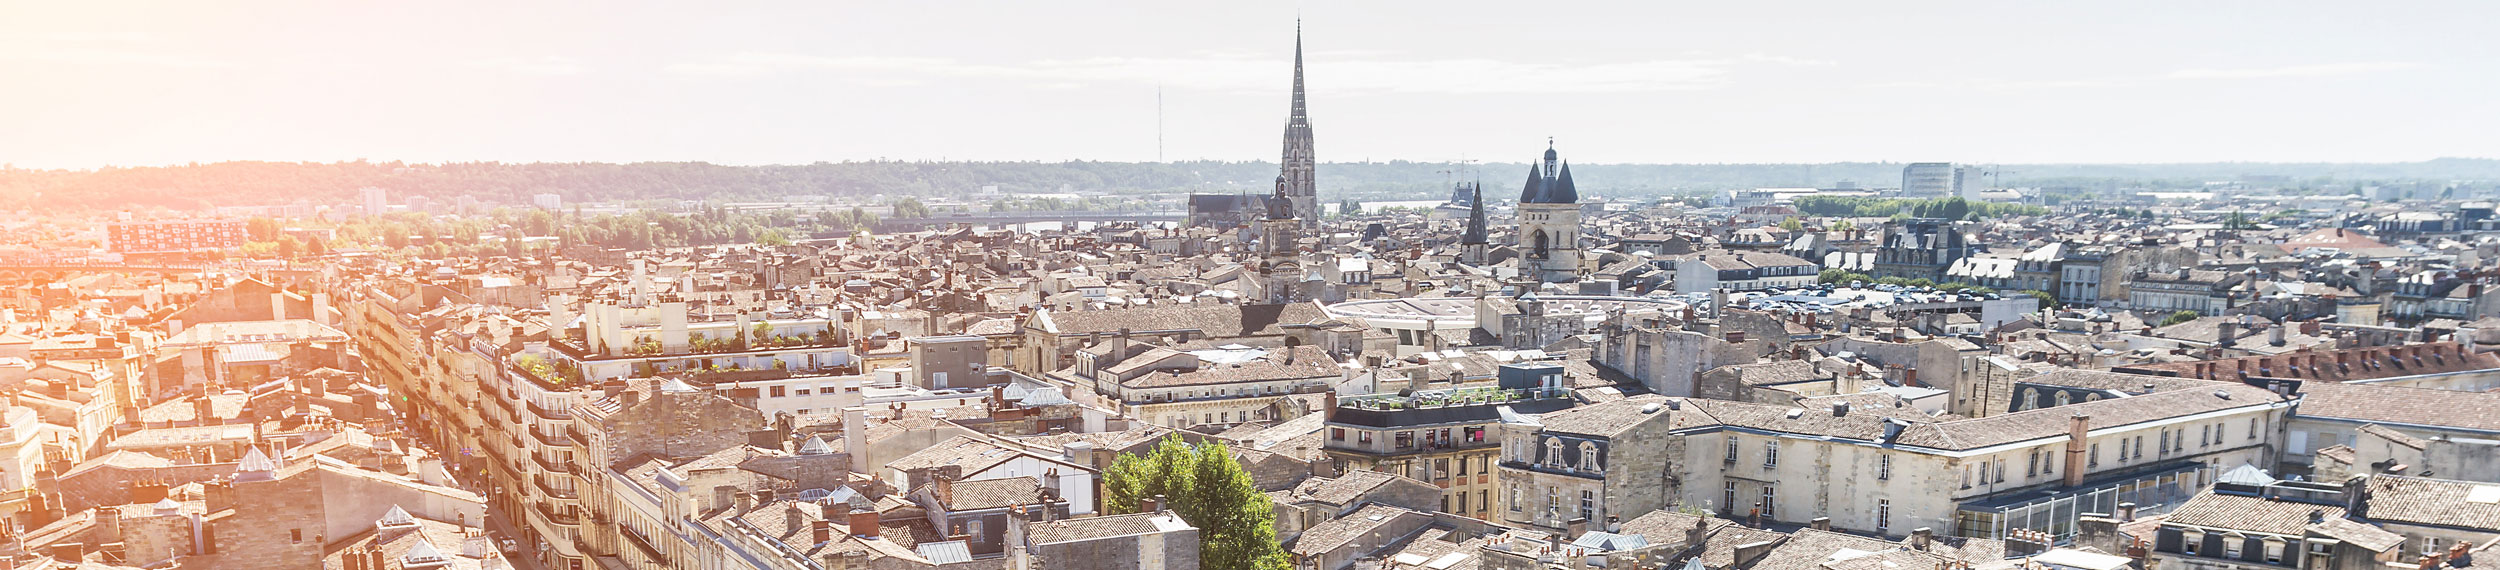 Aerial view of the city in Bordeaux, France.